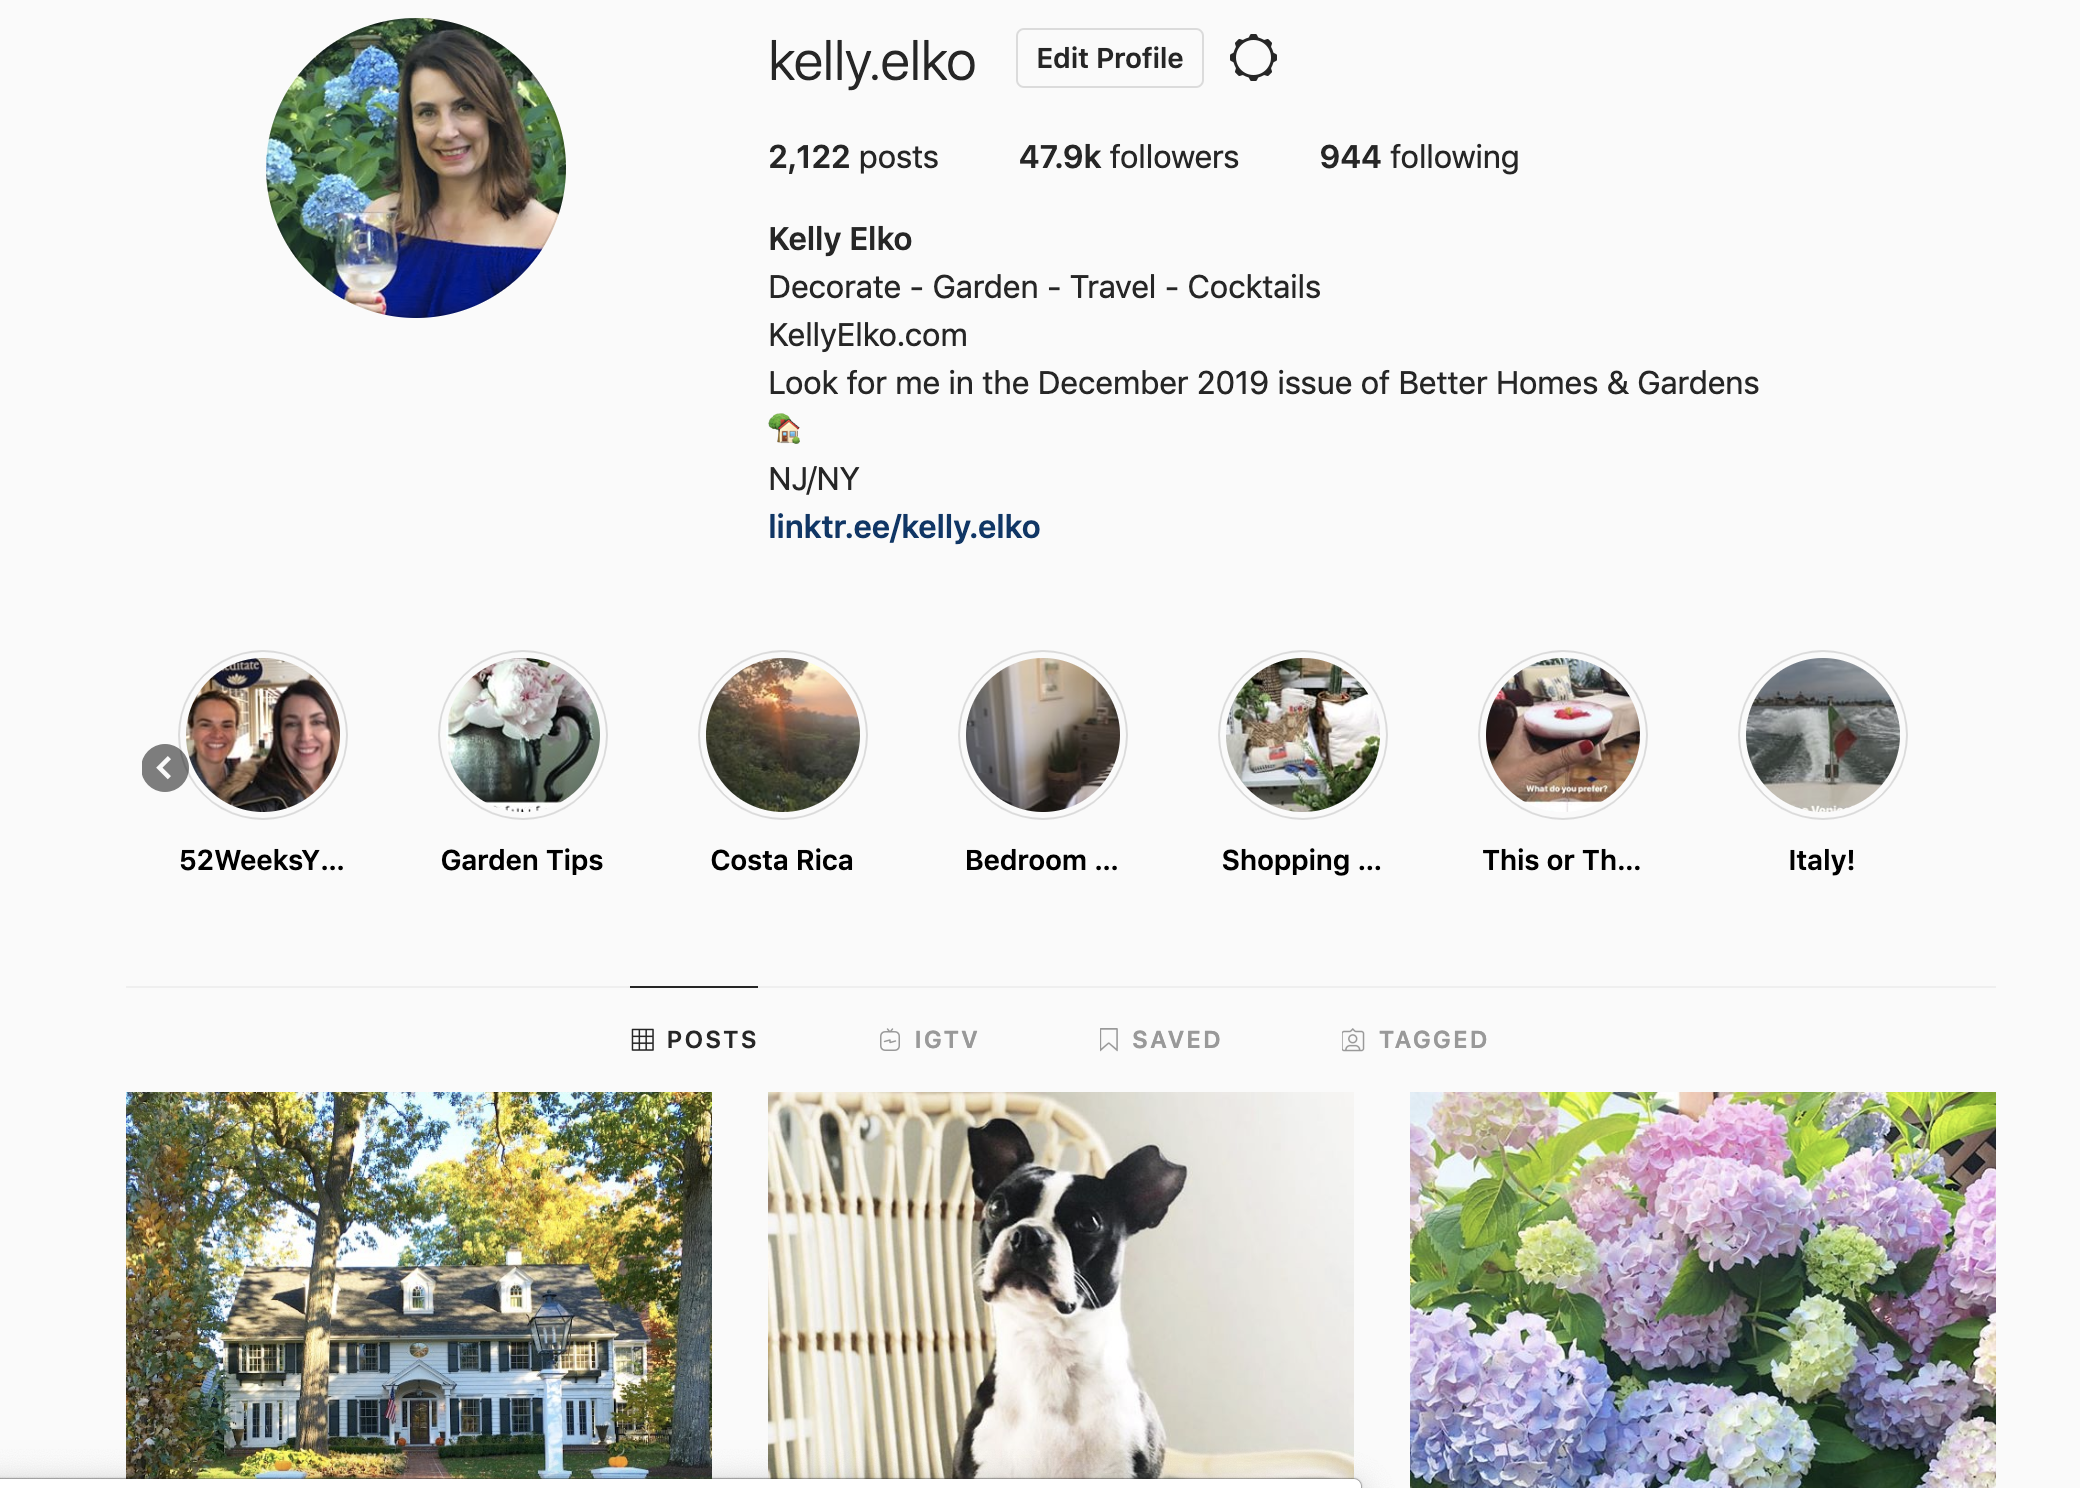 @Kelly.Elko on Instagram